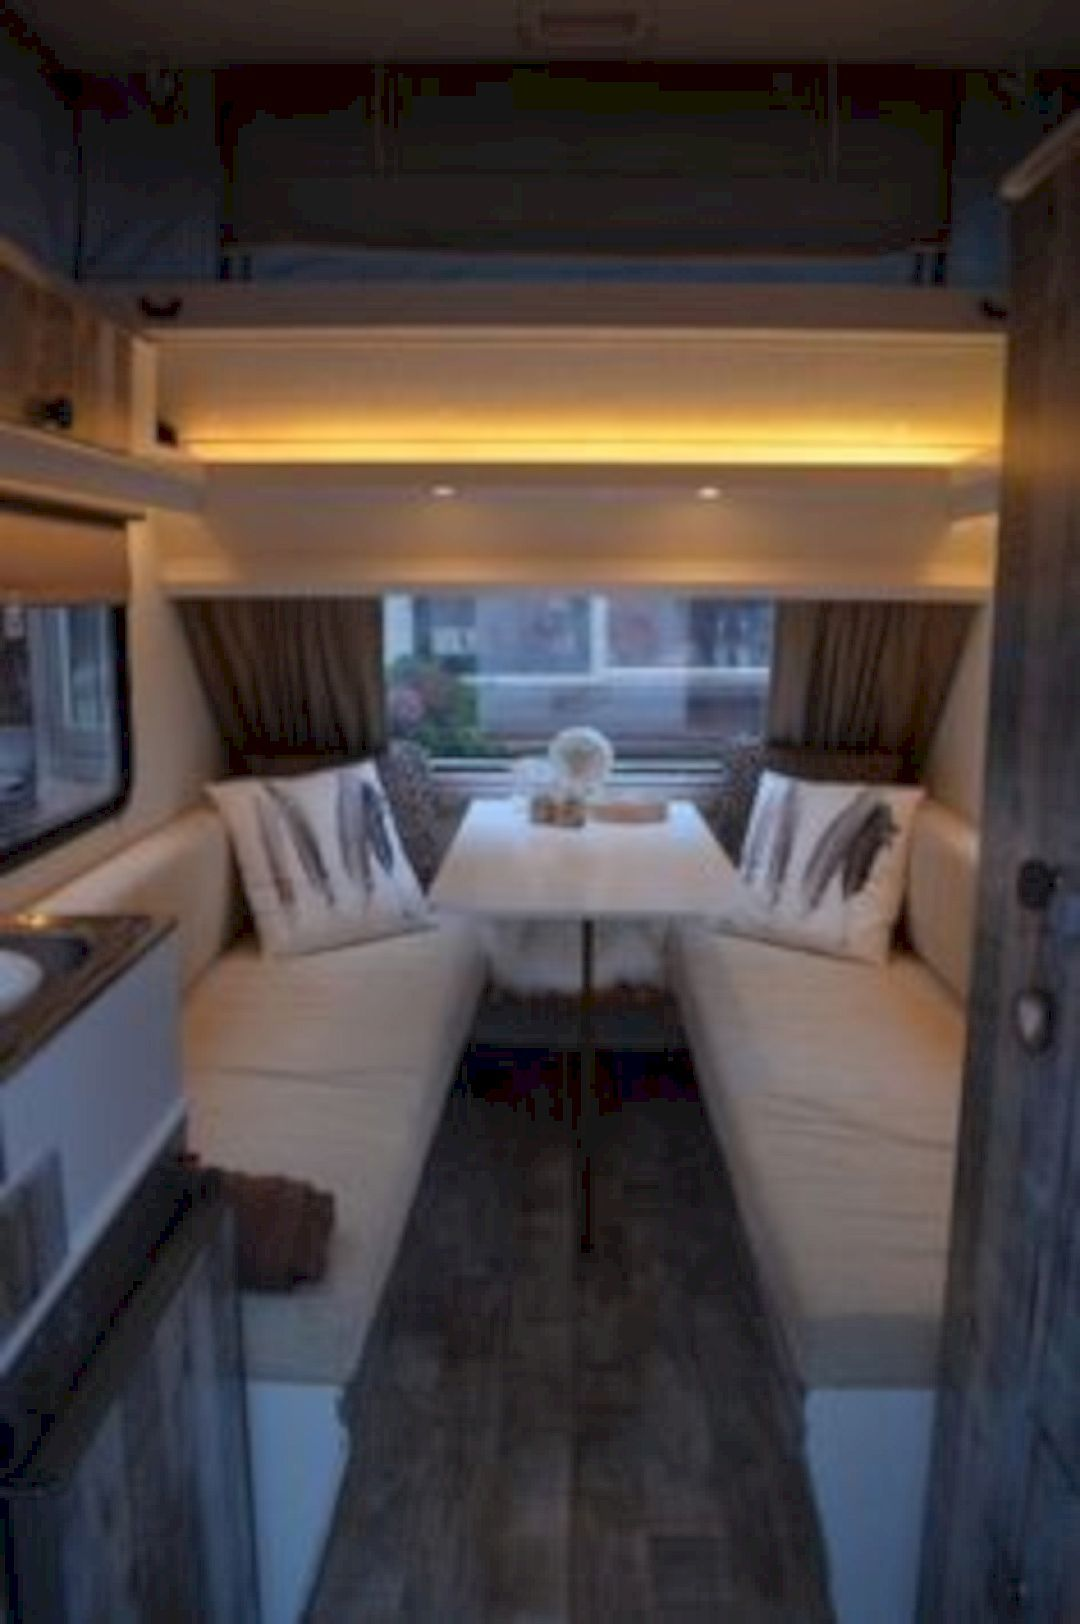 15 campervan interior design ideas for a cozy camping time - Interior design without a degree ...